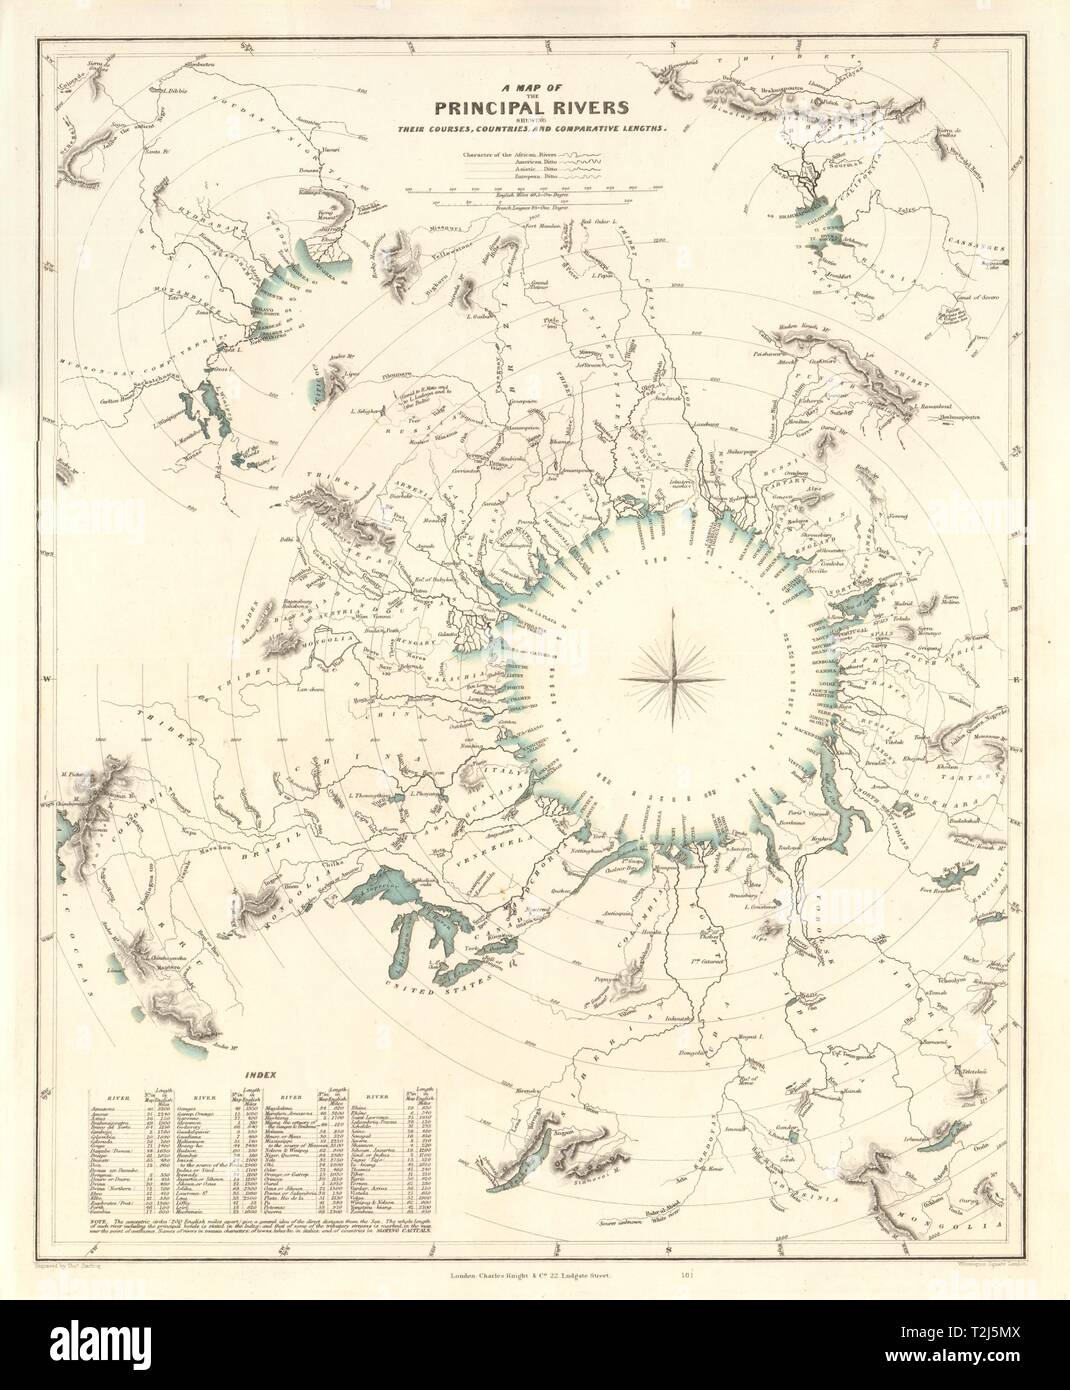 Comparative lengths of PRINCIPAL RIVERS of the World. Countries. SDUK 1845 map - Stock Image